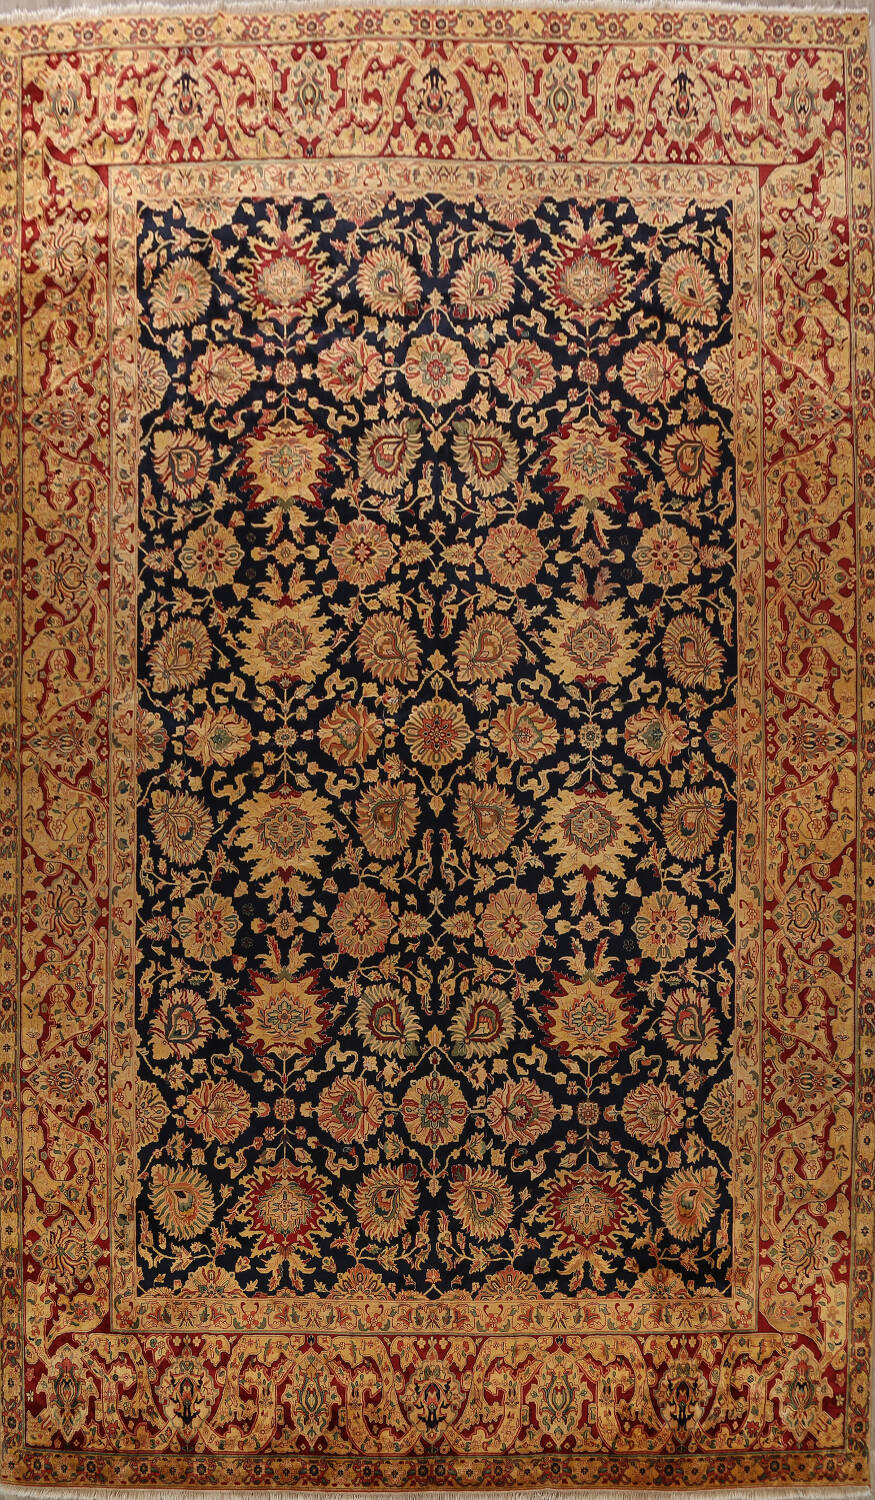 All-Over Floral Agra Oriental Area Rug 13x17 Large image 1